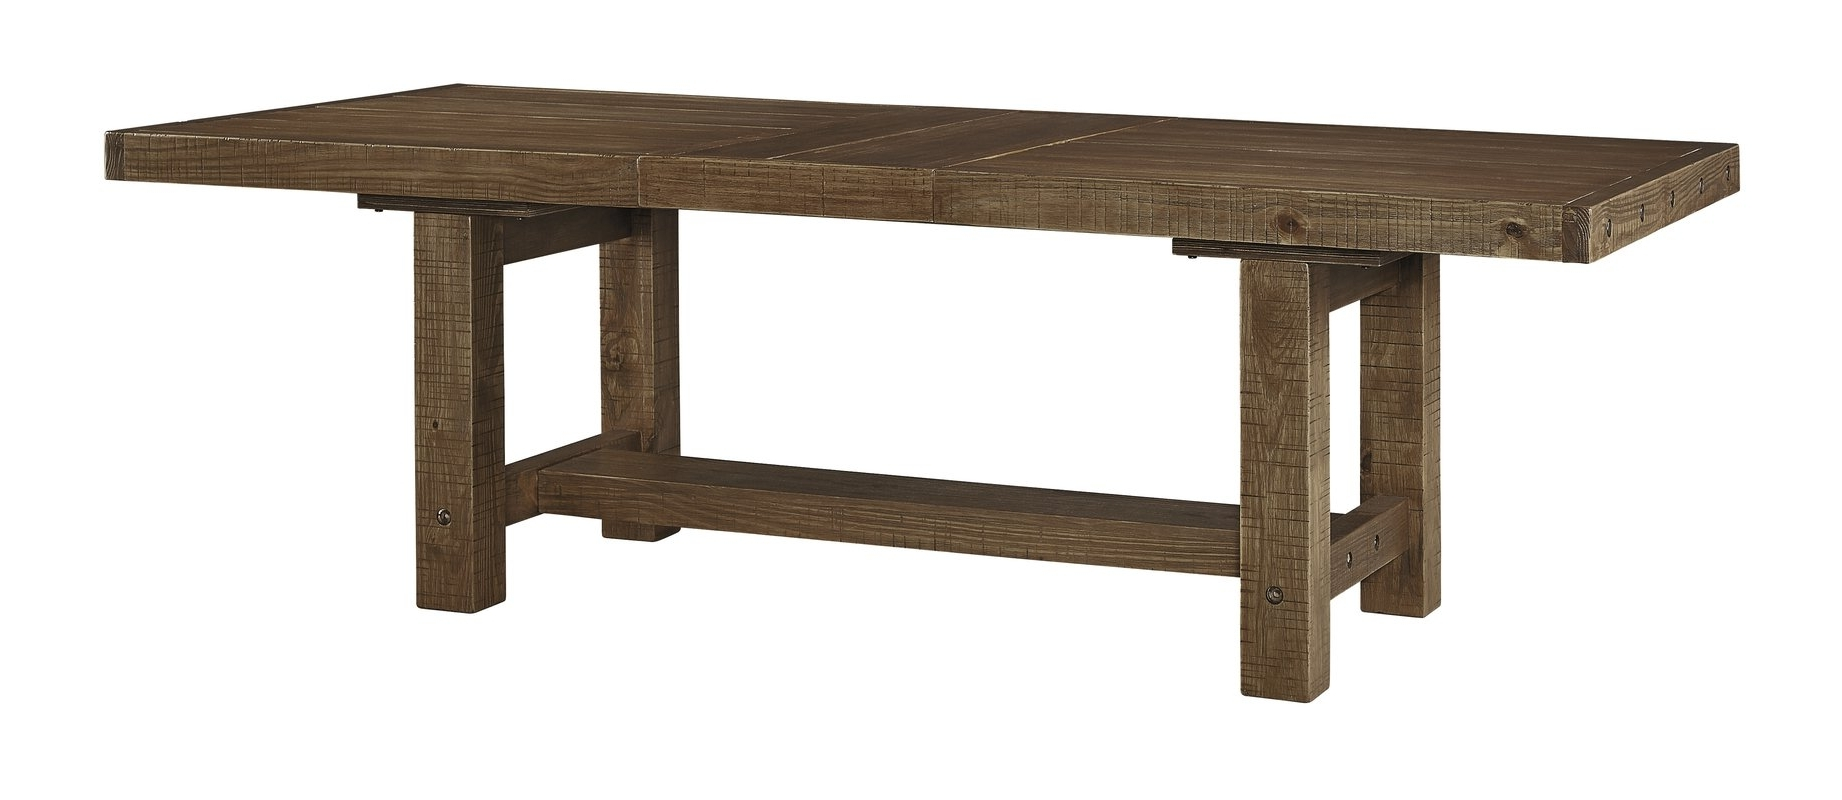 Wayfair With Regard To Non Wood Dining Tables (View 25 of 25)